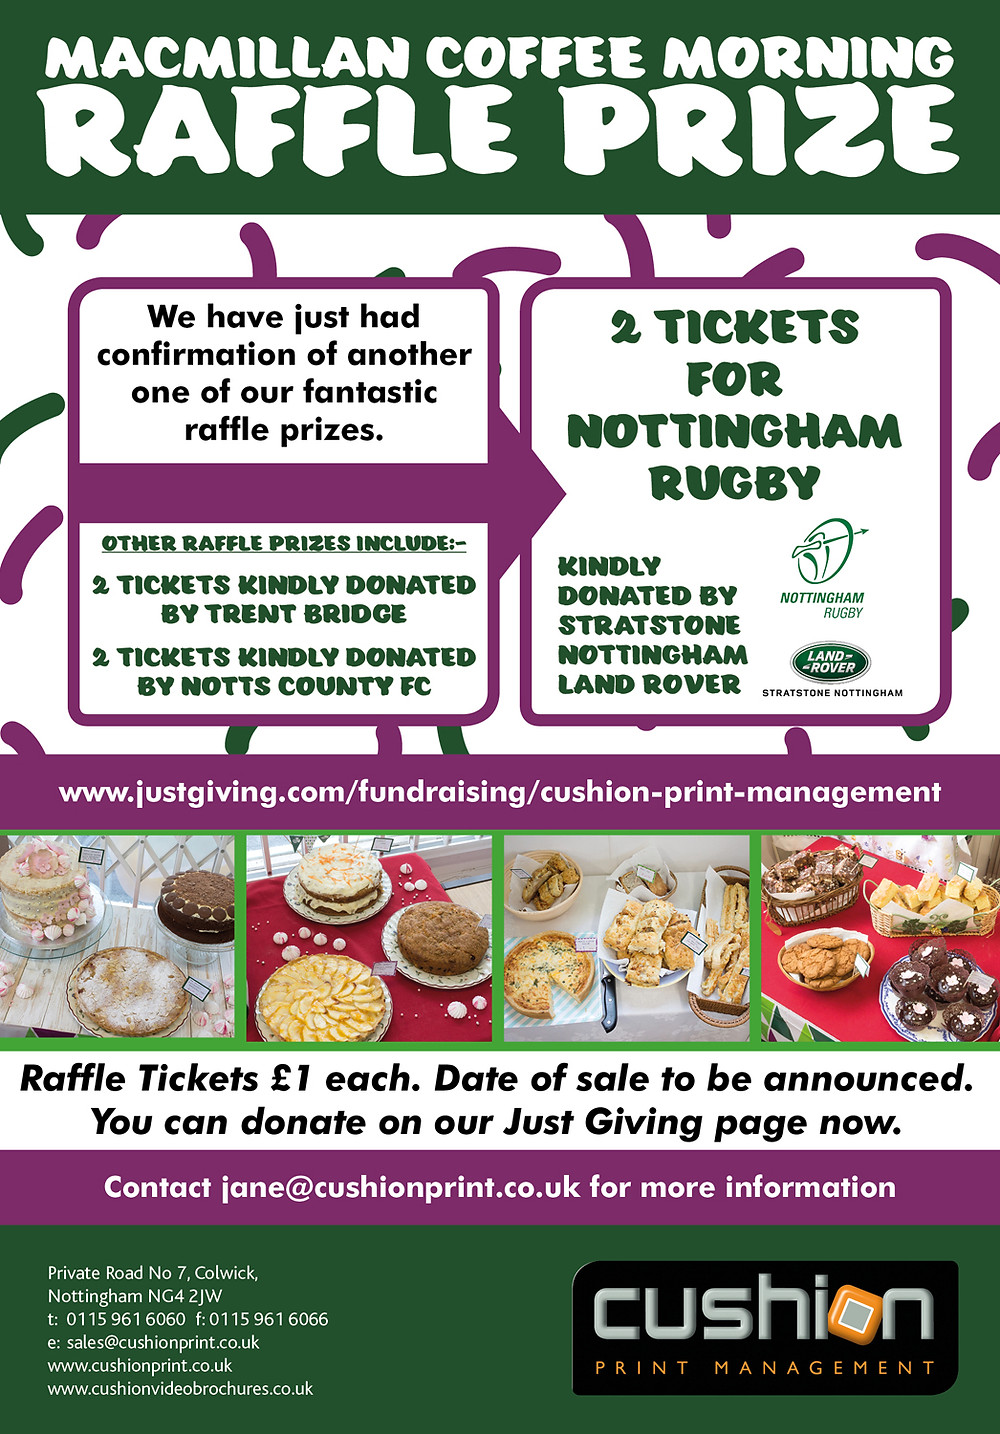 Win 2 x Nottingham Rugby Tickets Kindly Donated By Stratstone Nottingham Land Rover For Our Macmillan Cake Sale Event On 28th Sept